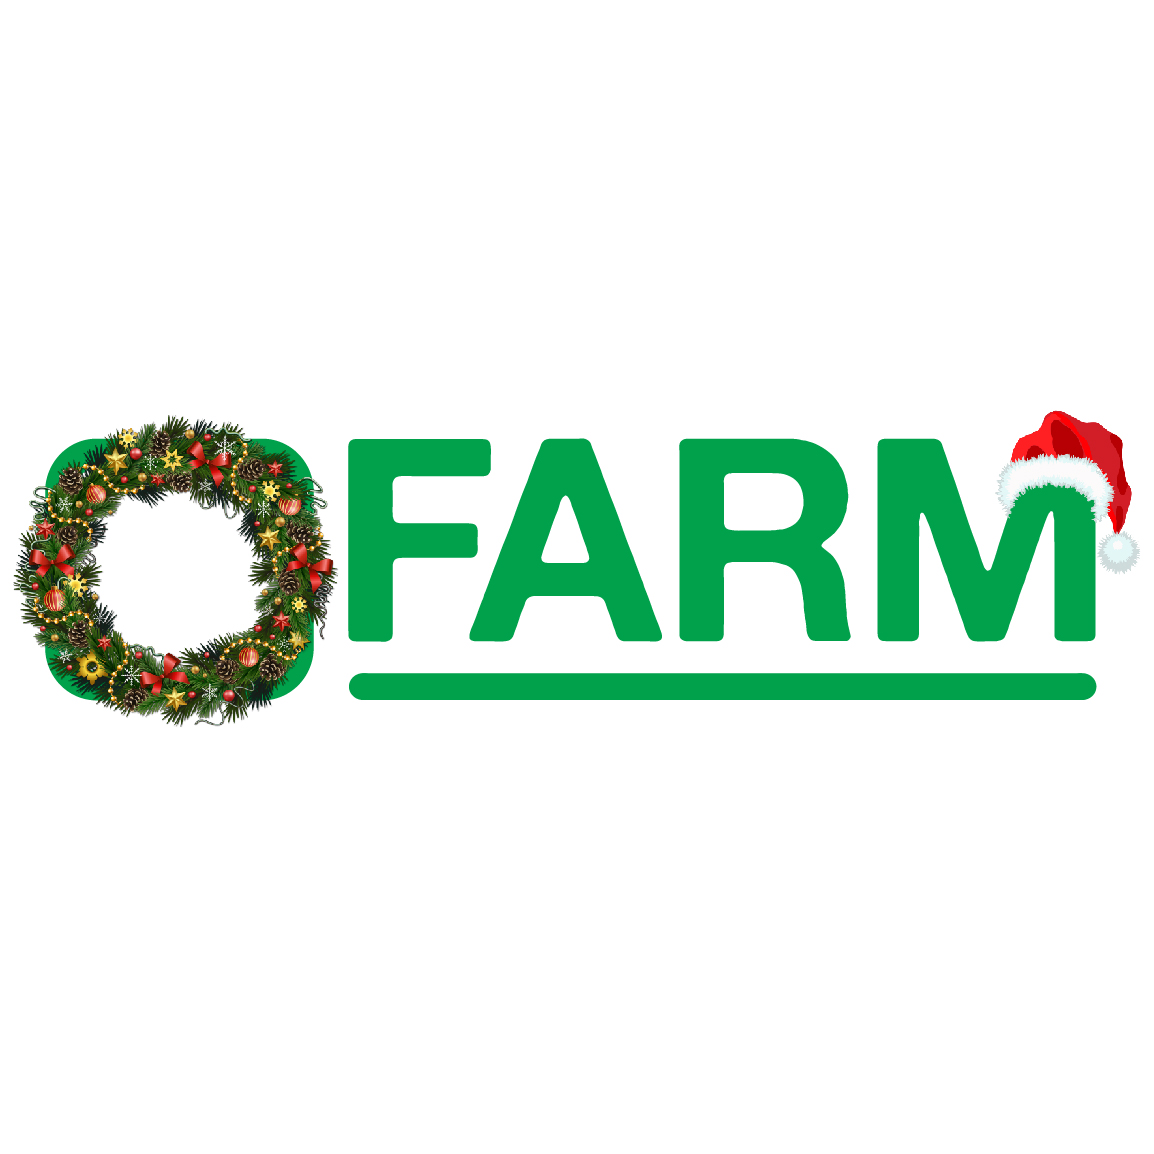 A time for giving in Festive Farm world